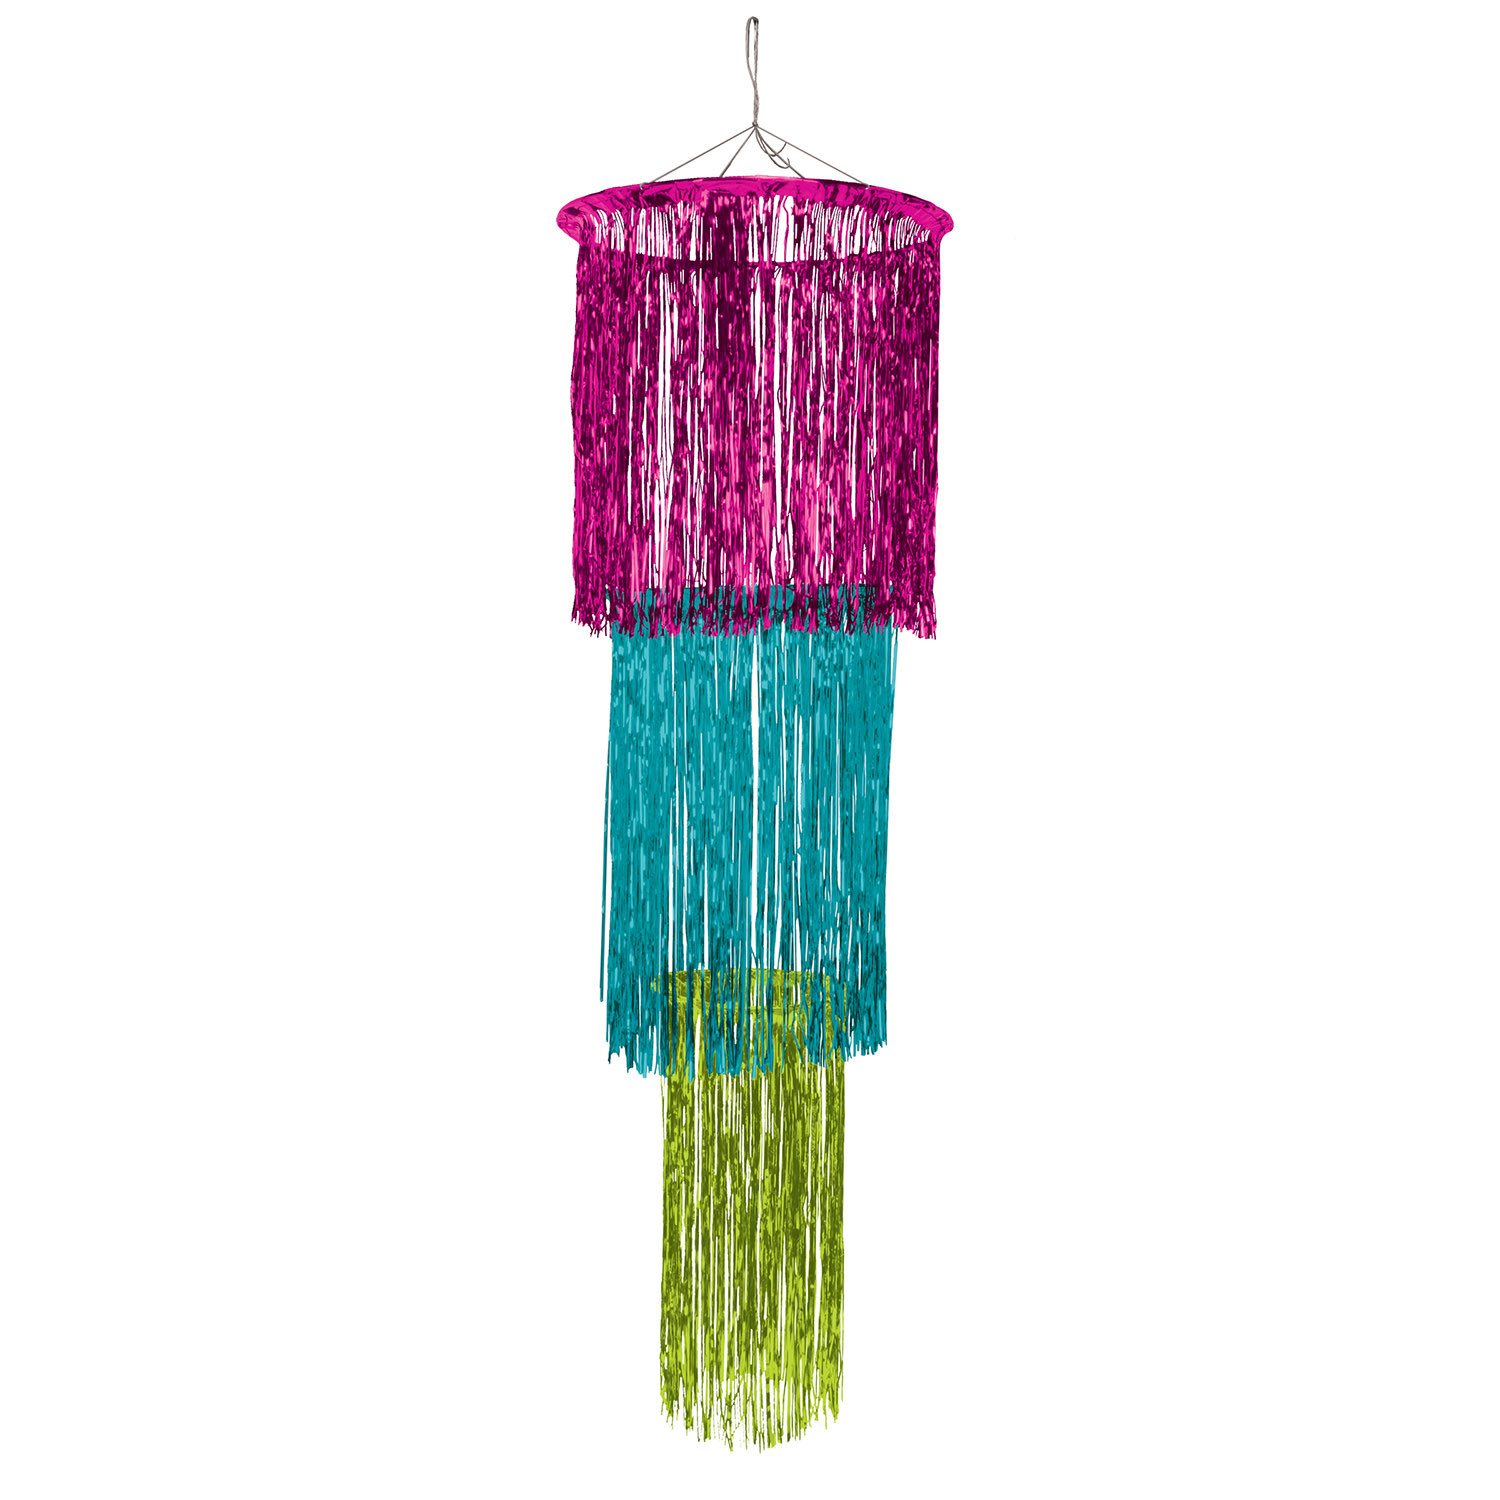 3-Tier Cerise, Light Green, and Teal Shimmering Chandelier (Pack of 6) .